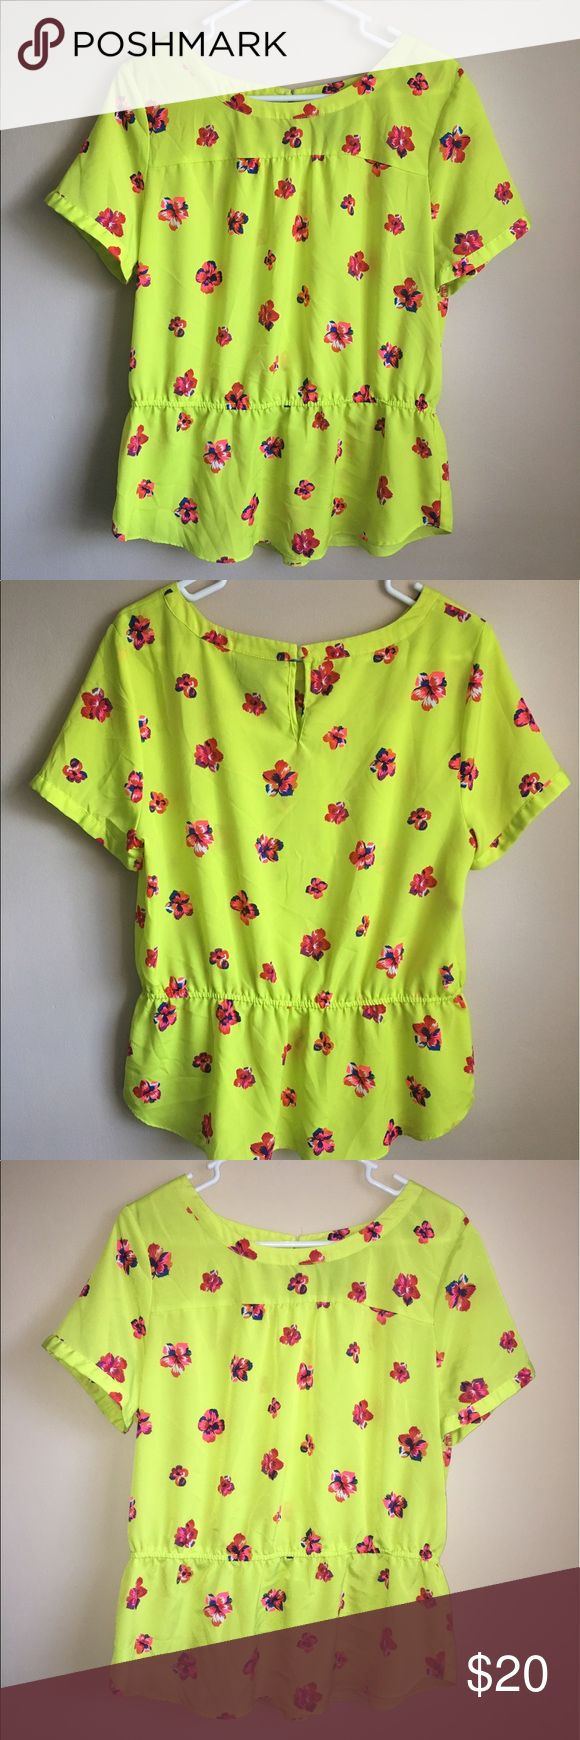 Floral neon yellow with flowers blouse Beautiful neon yellow top with flowers in front and back. In good condition. Size Large. 100% Polyester. Perfect for the summer ! attention Tops Blouses